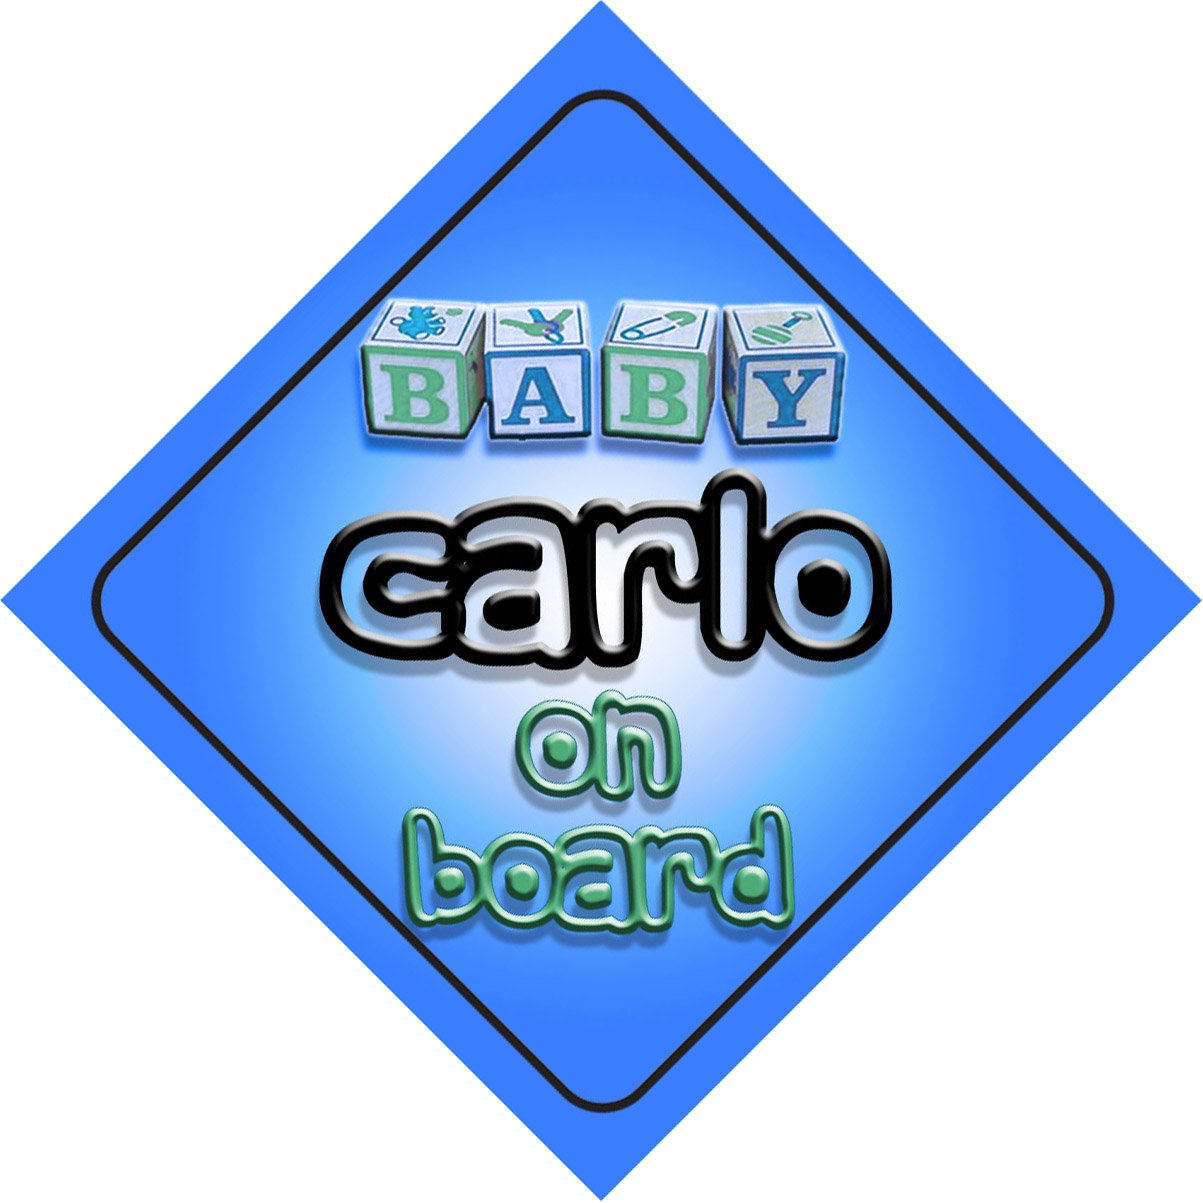 Baby Boy Carlo on board novelty car sign gift//present for new child//newborn baby